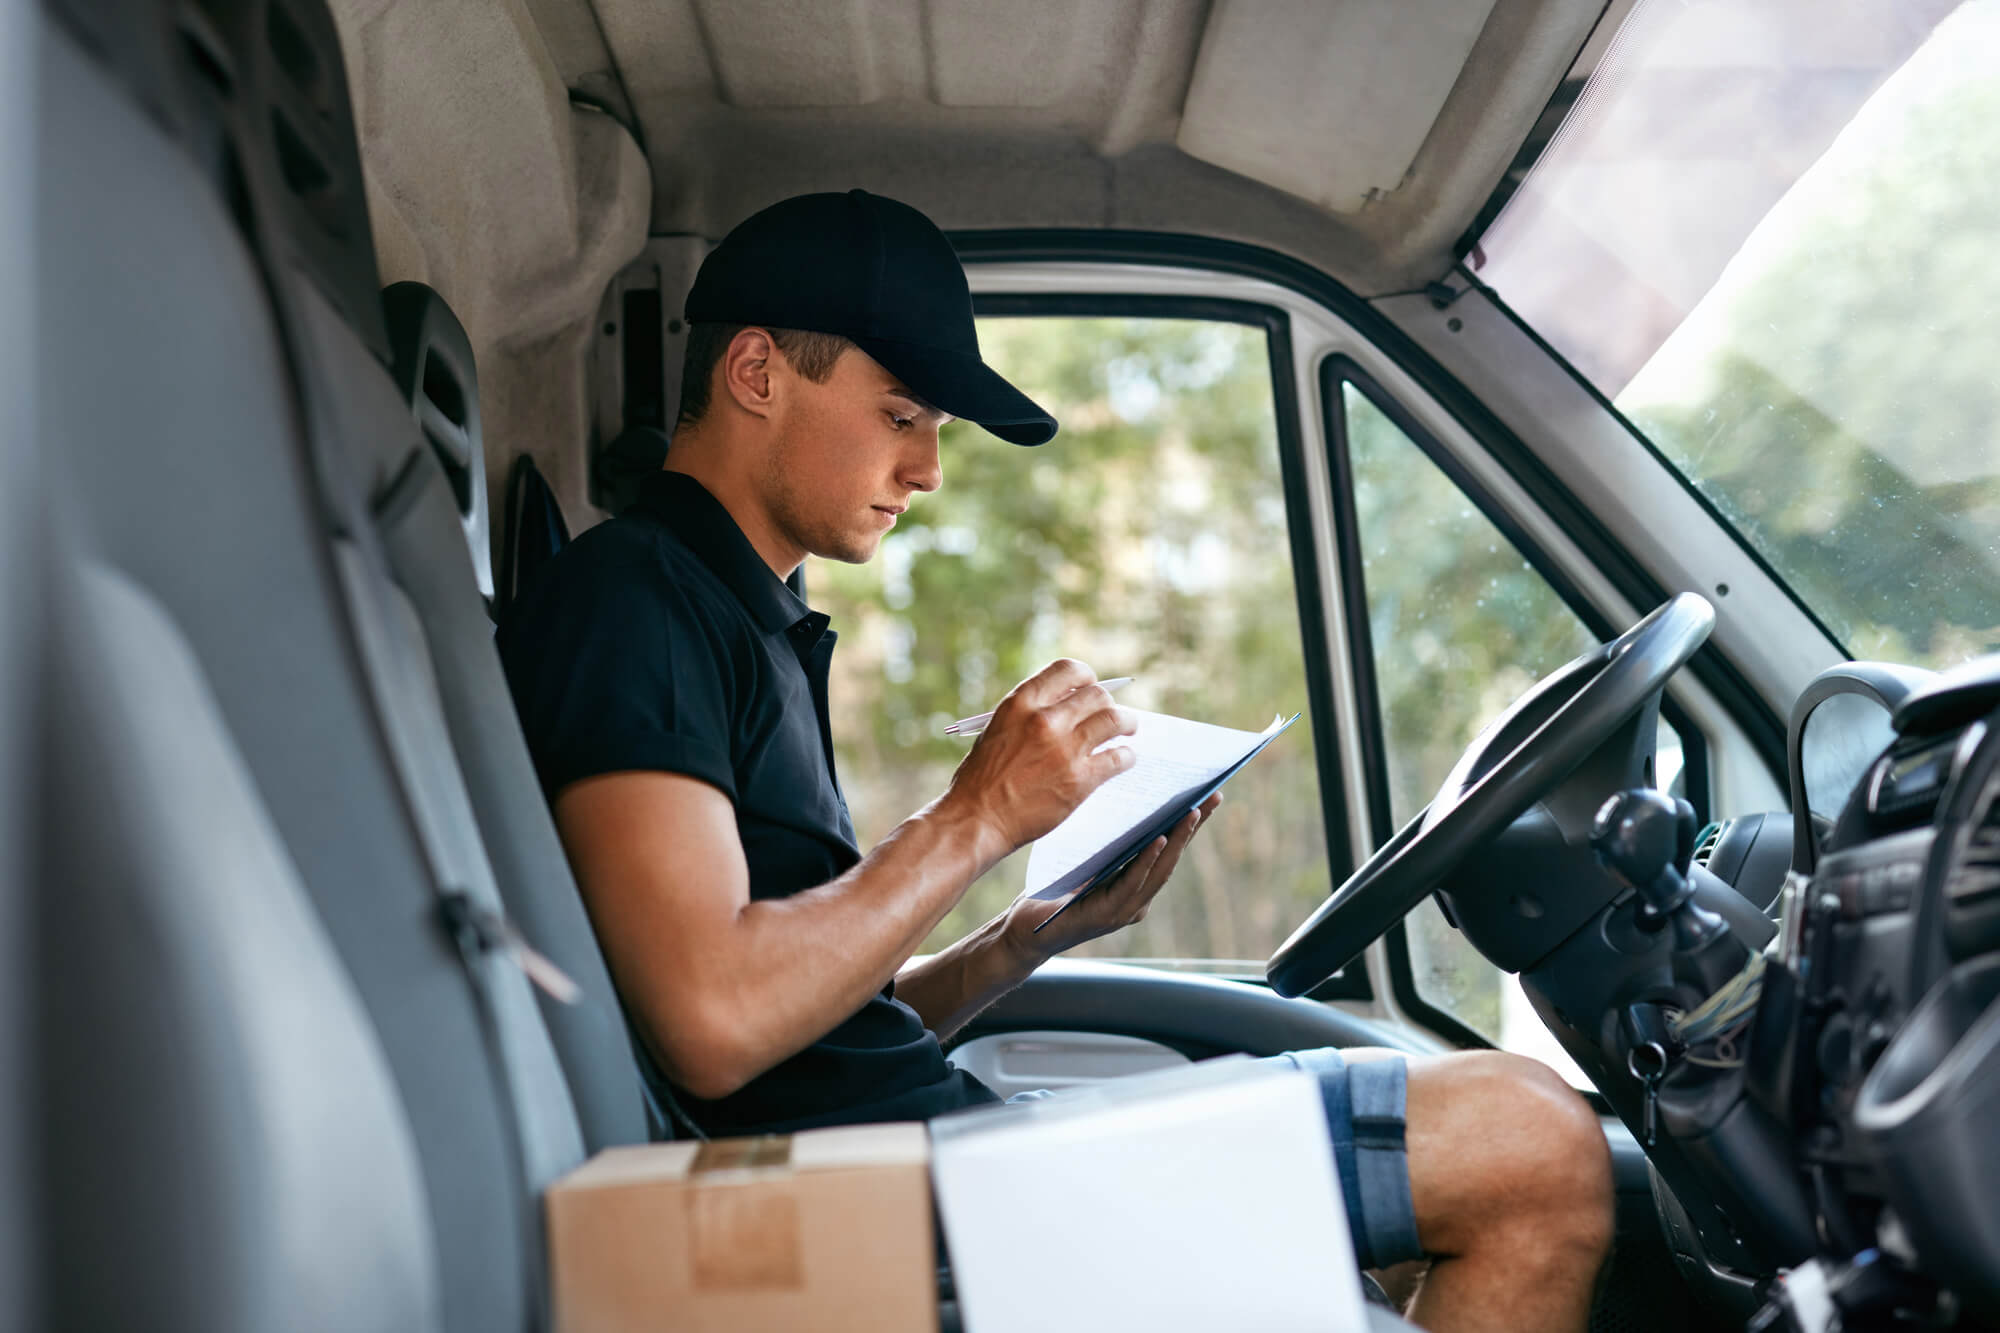 Driver driving truck but distracted by reading something